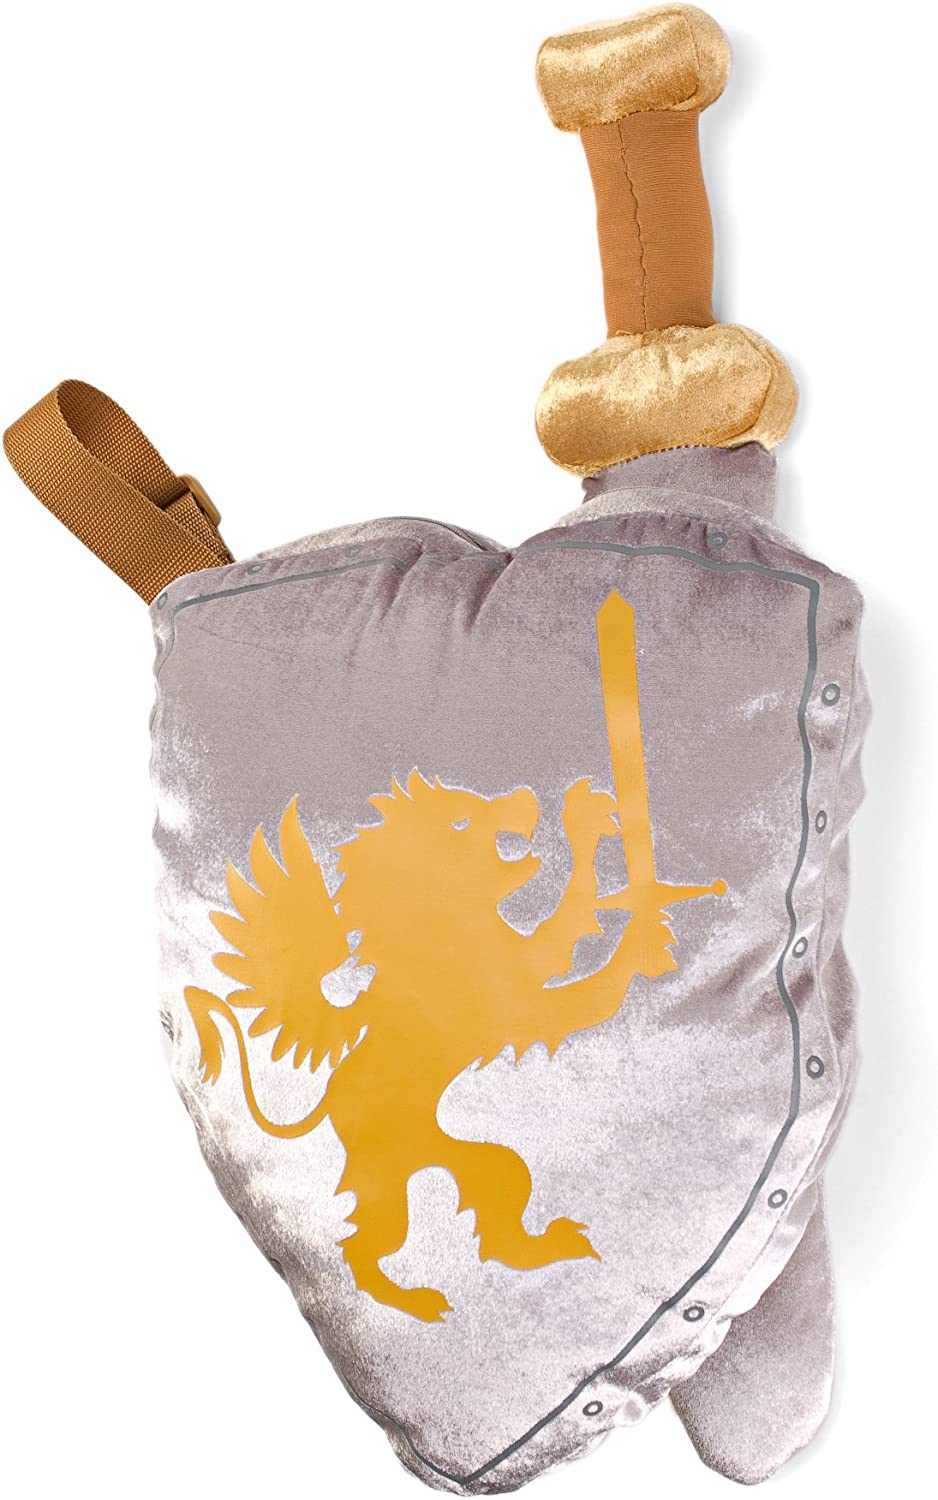 Warrior Shield and Sword Plush Toy Set